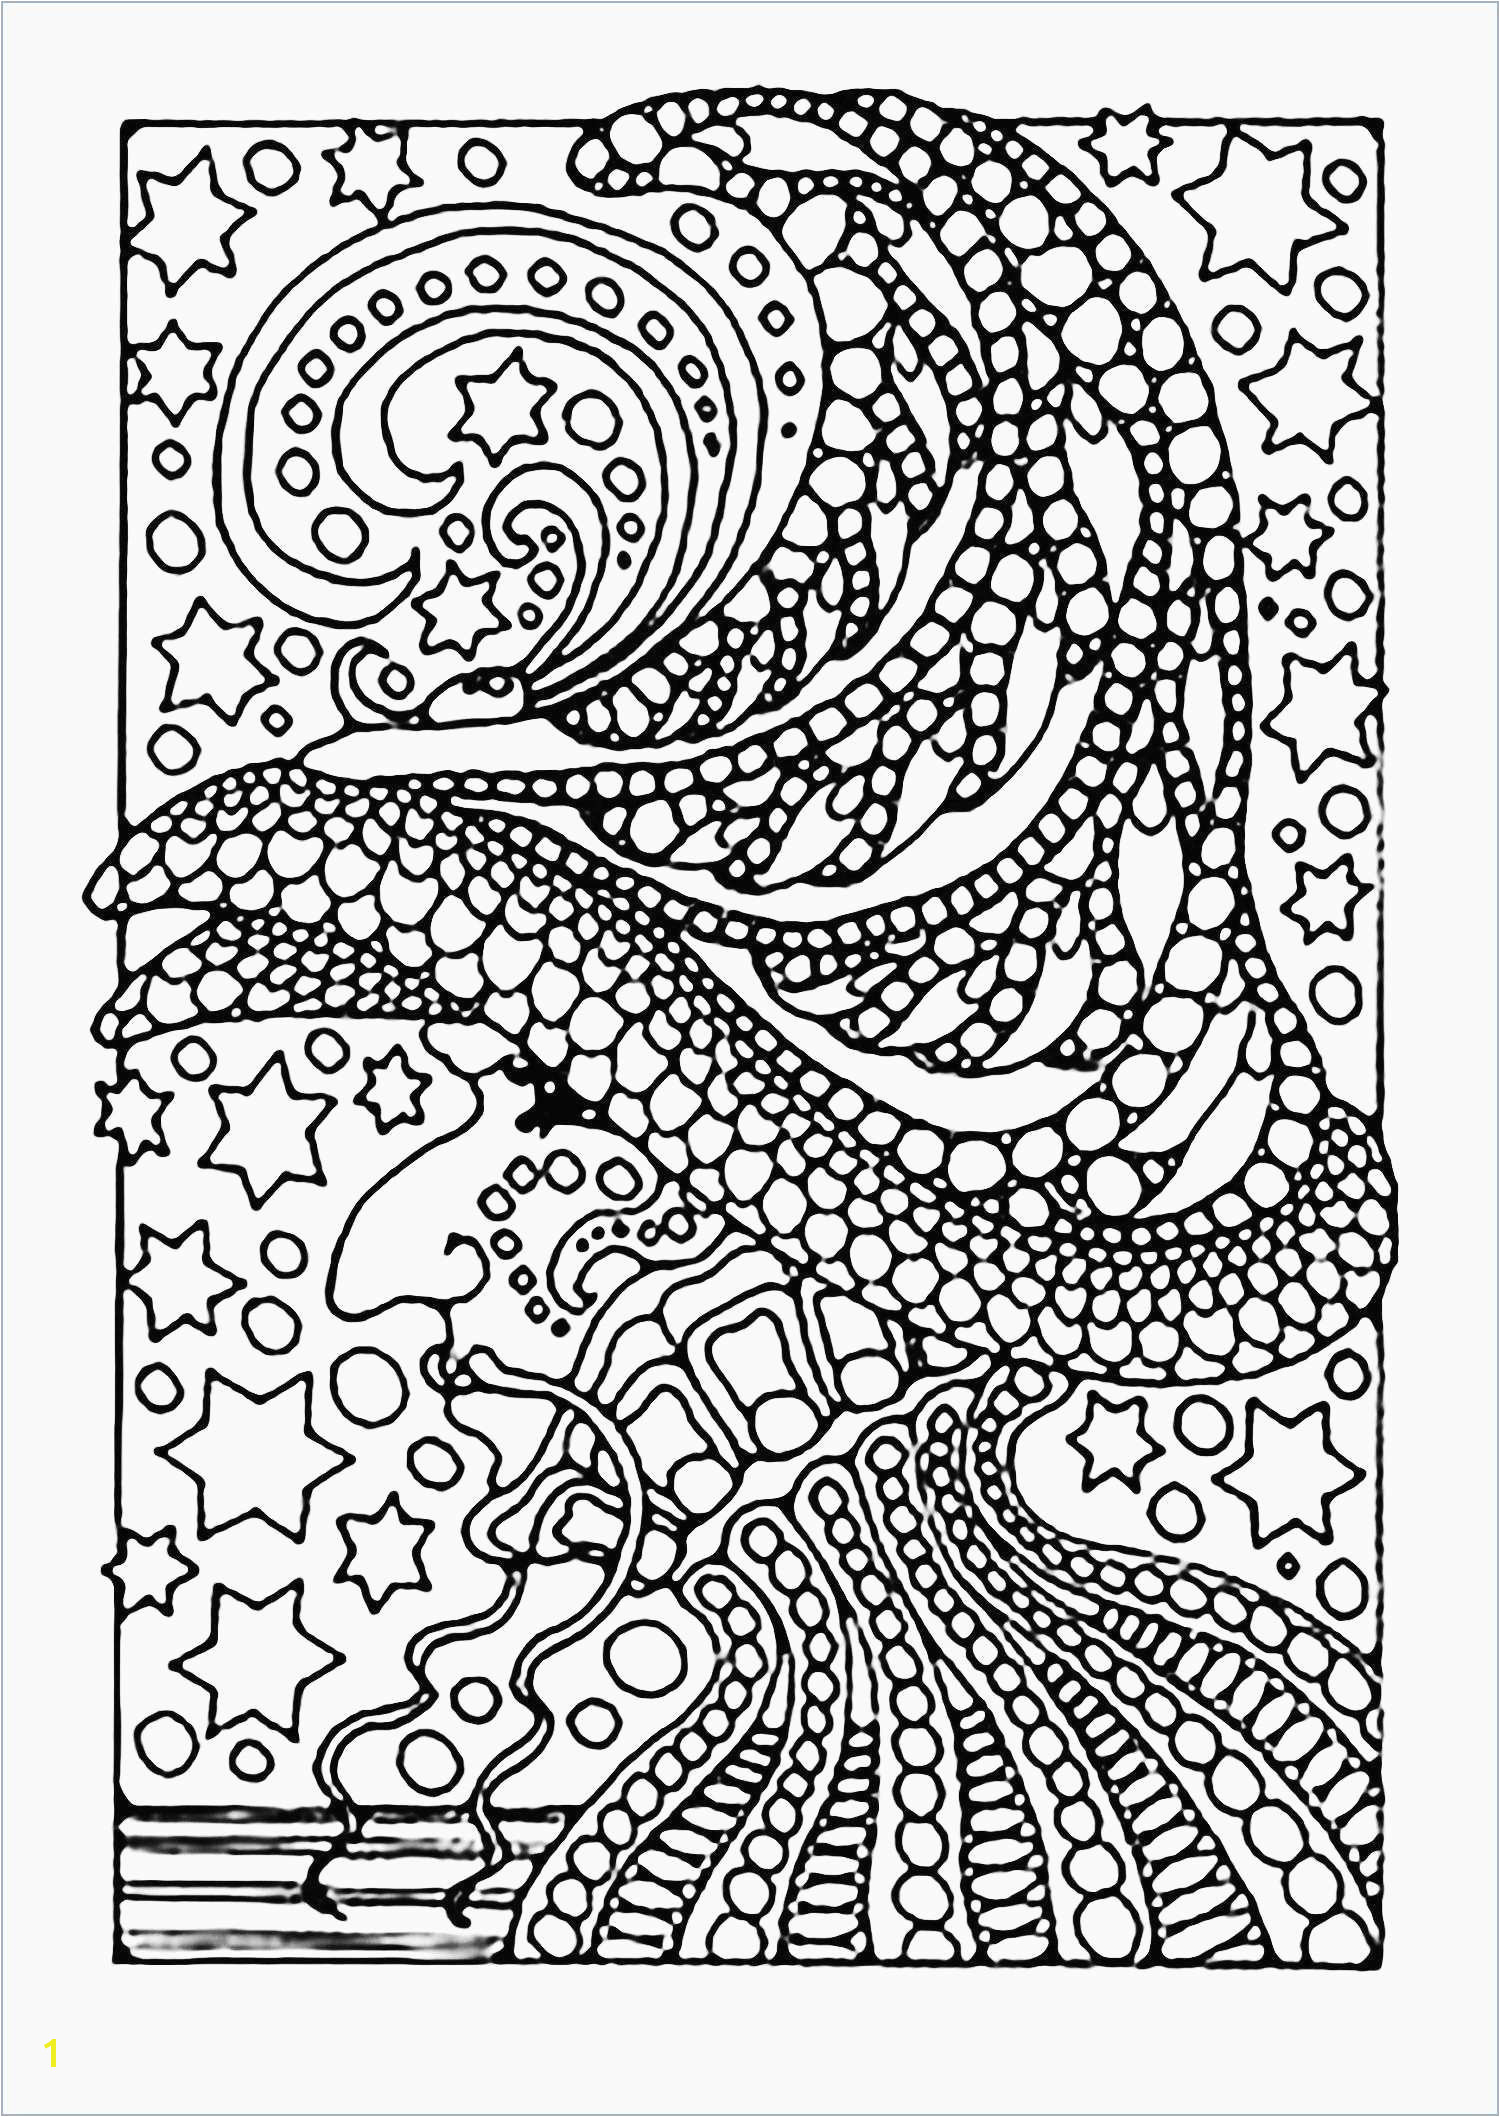 Christmas Gingerbread House Coloring Pages Gingerbread Coloring Pages Cute Gingerbread Man Template Coloring